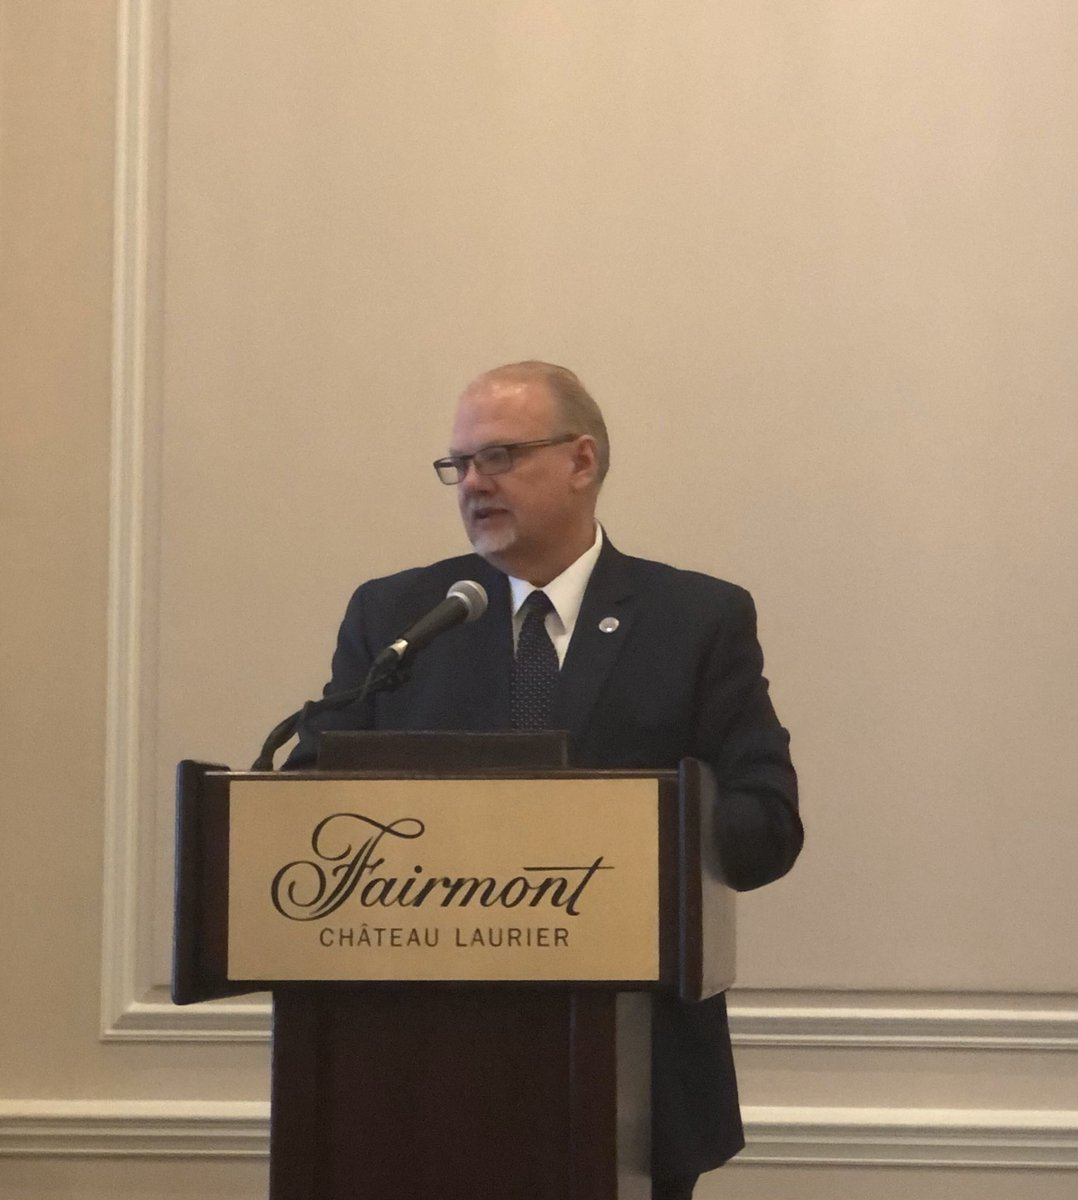 test Twitter Media - Had the opportunity to speak with about 70 Ambassadors and diplomats from around the world in Ottawa today. It was an honour to be able to speak about my time as MLA and how politics and faith interact. A true honour. #CDNpoli #MBPoli https://t.co/wY6DdGZ878